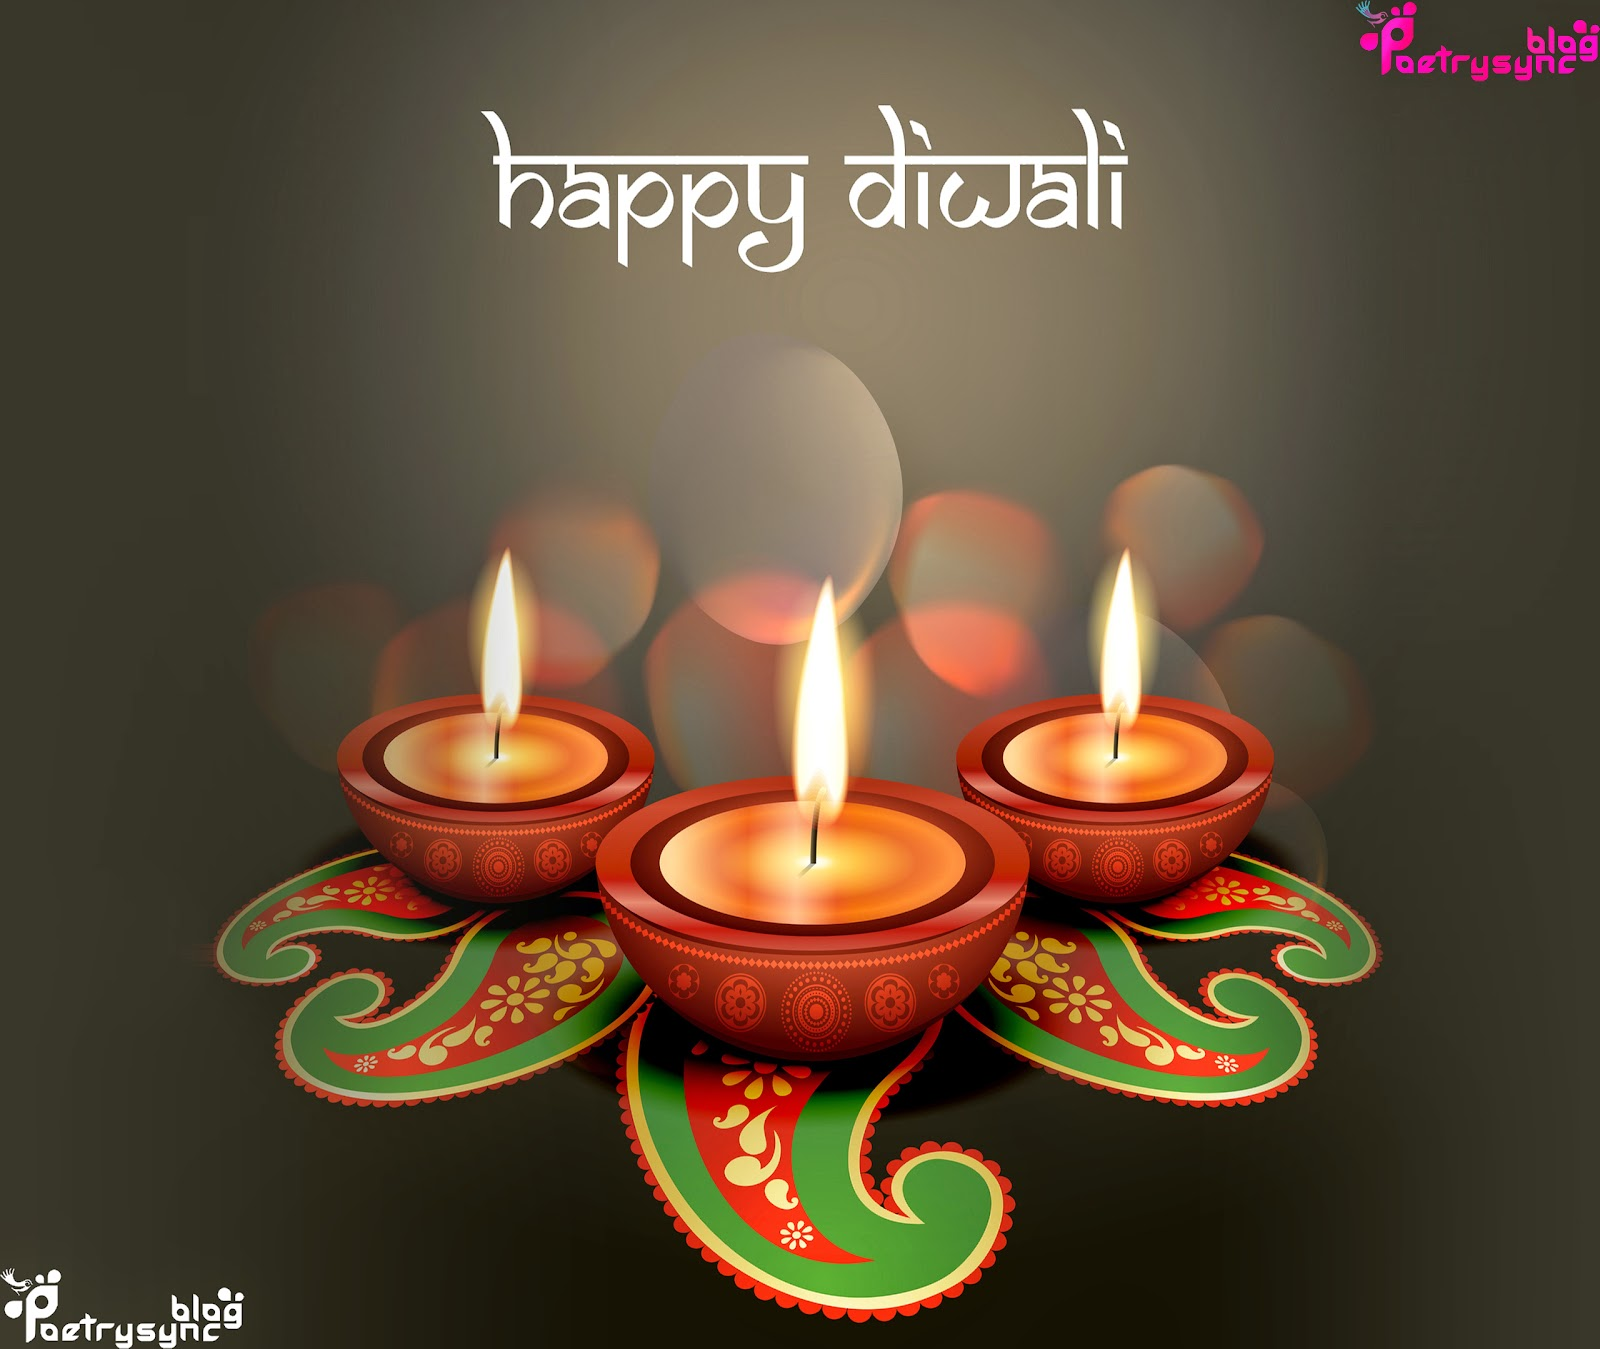 Happy Diwali Festival Wallpapers With Wishes Messages In English